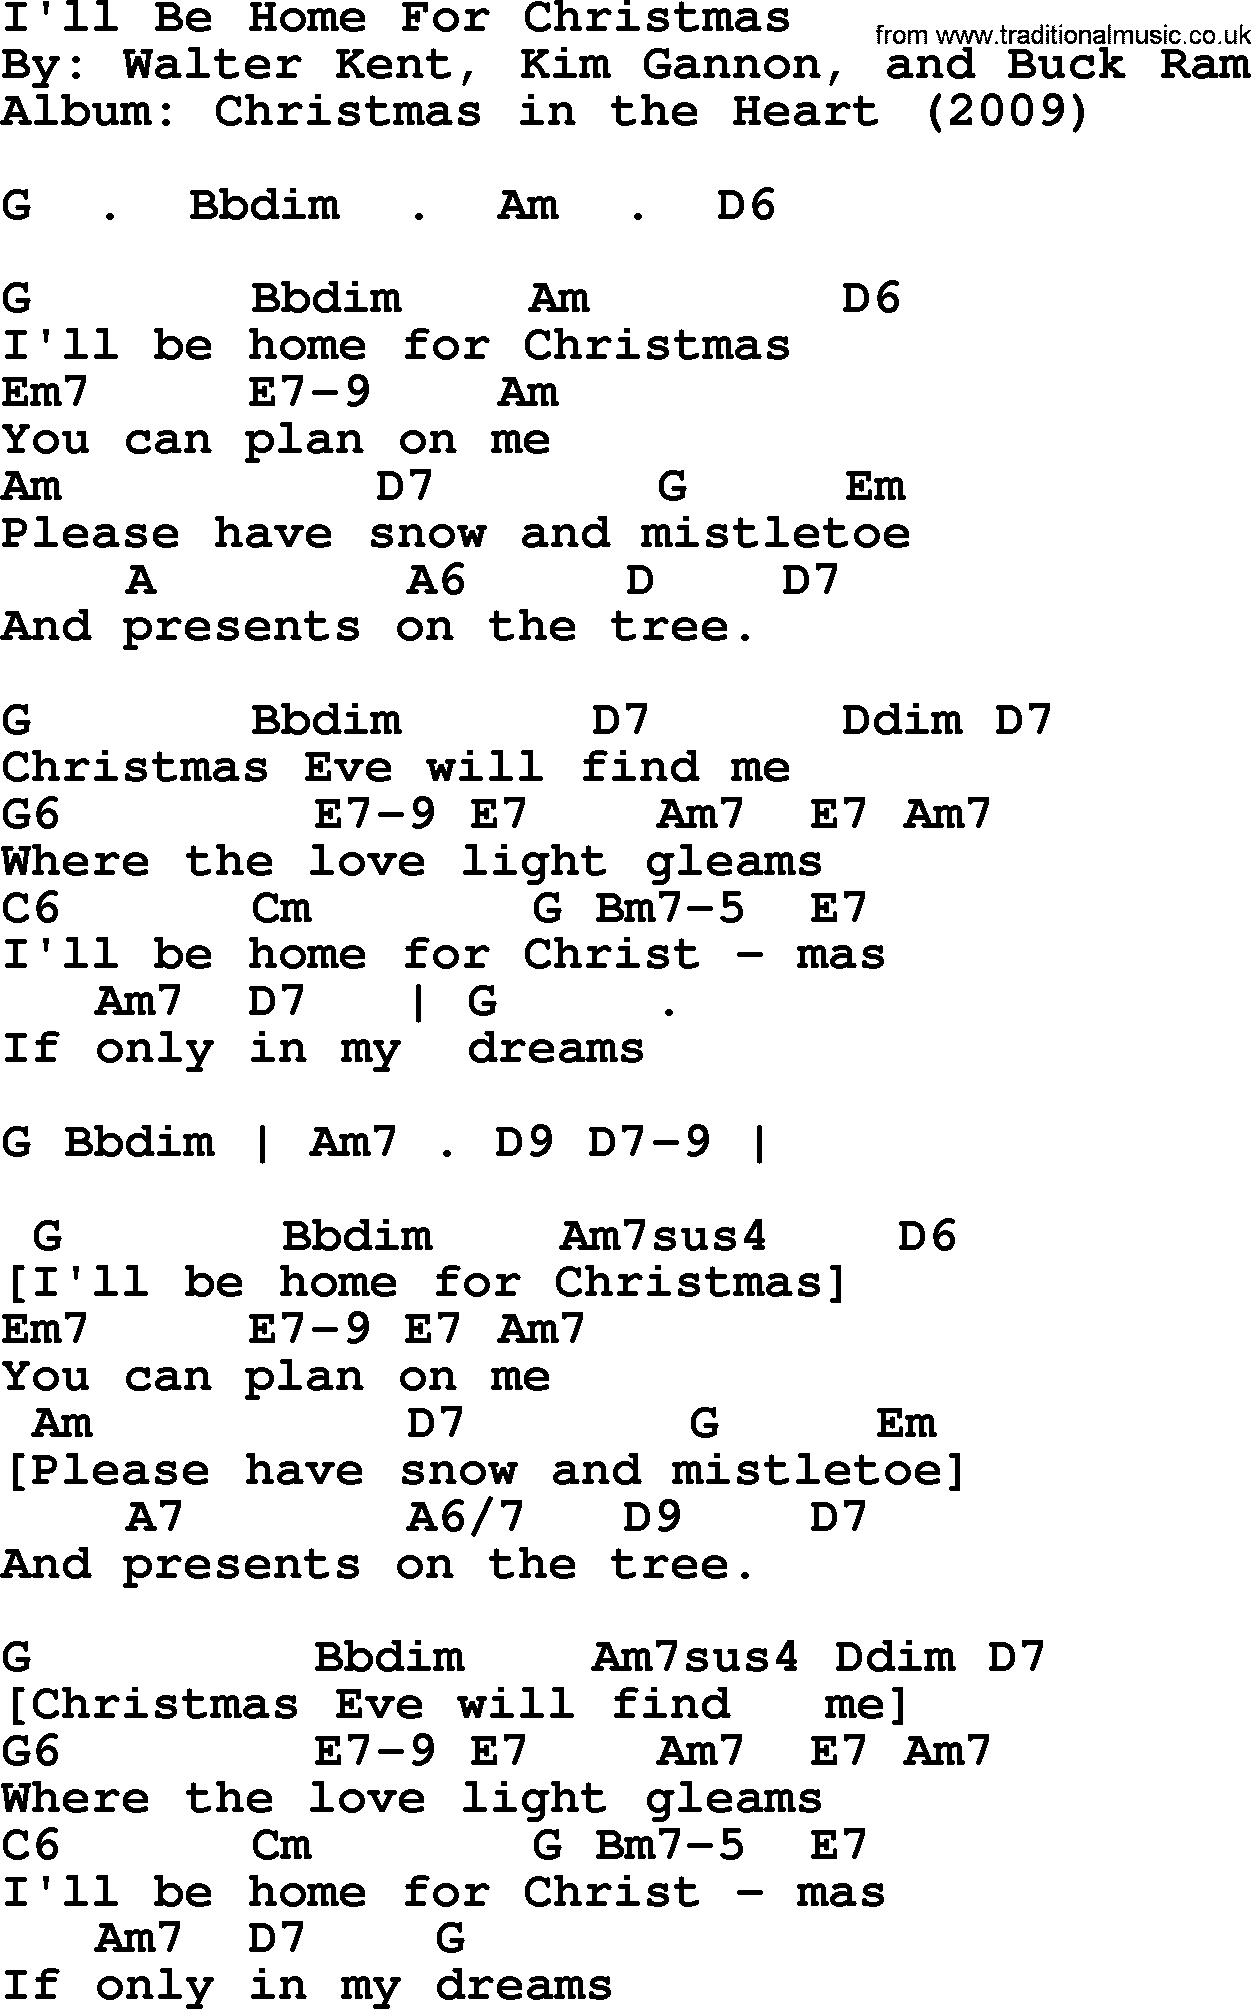 Ill Be Home For Christmas Chords.Bob Dylan Song I Ll Be Home For Christmas Lyrics And Chords